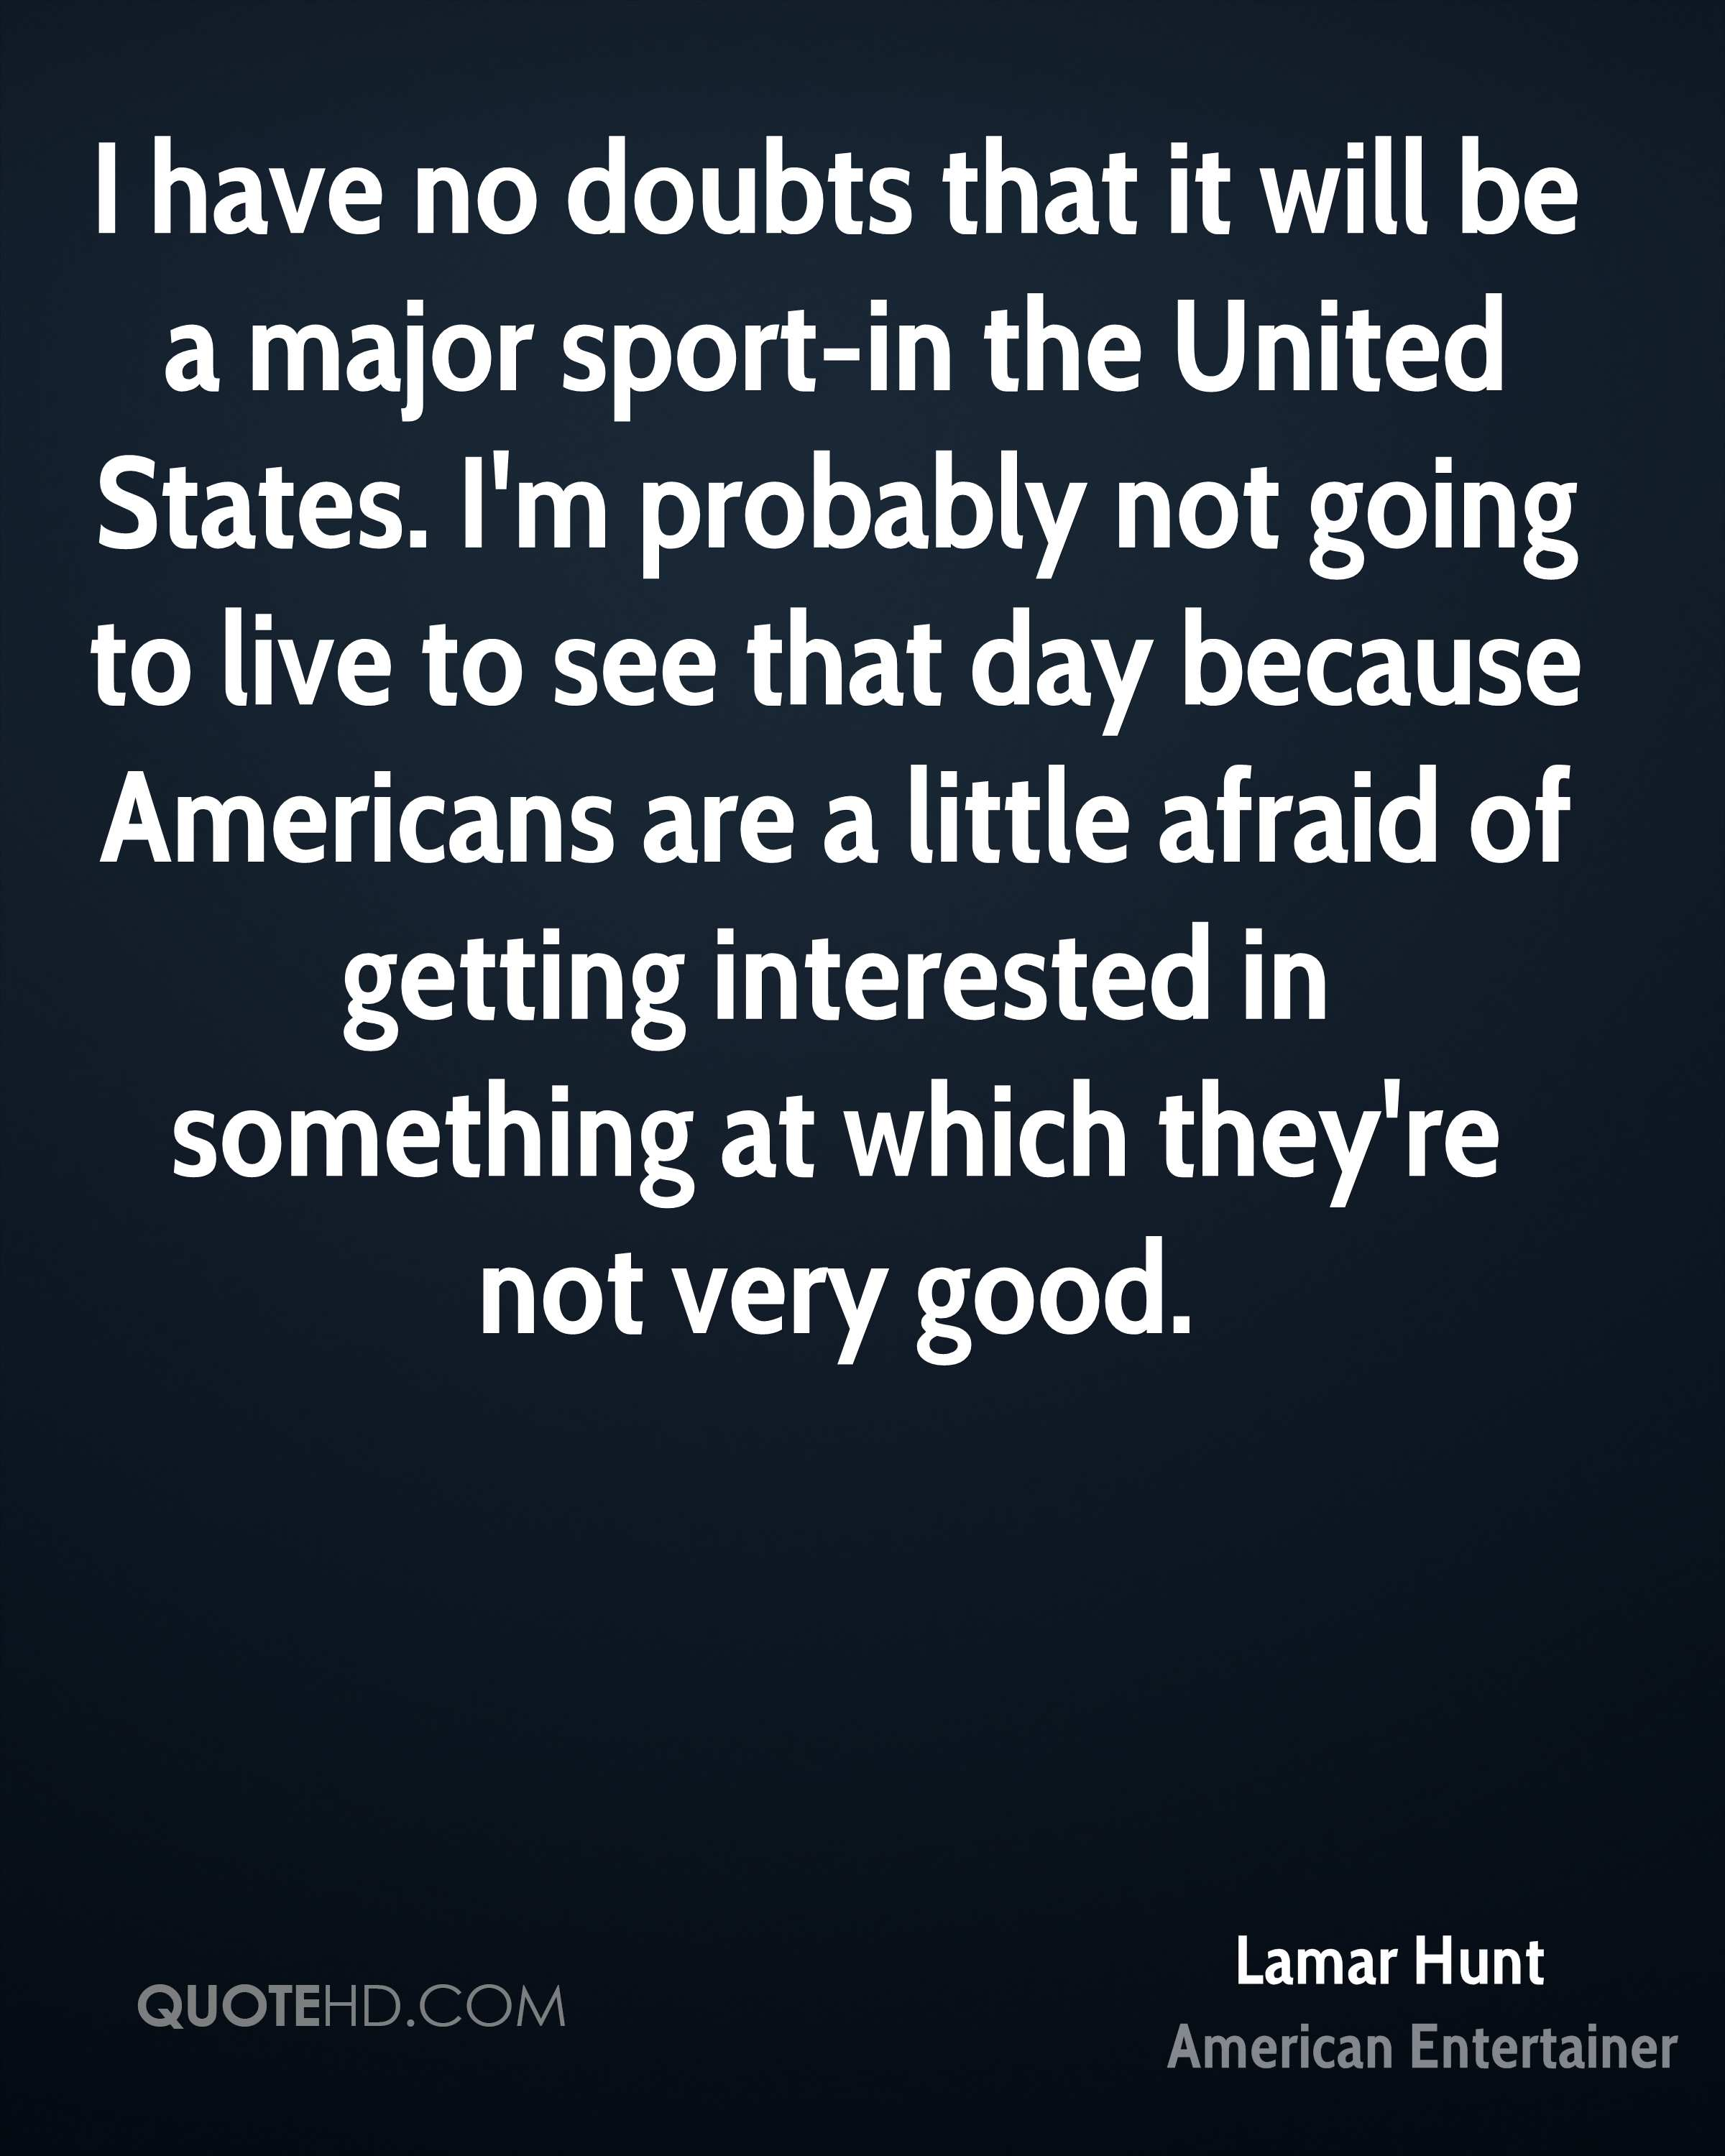 I have no doubts that it will be a major sport-in the United States. I'm probably not going to live to see that day because Americans are a little afraid of getting interested in something at which they're not very good.